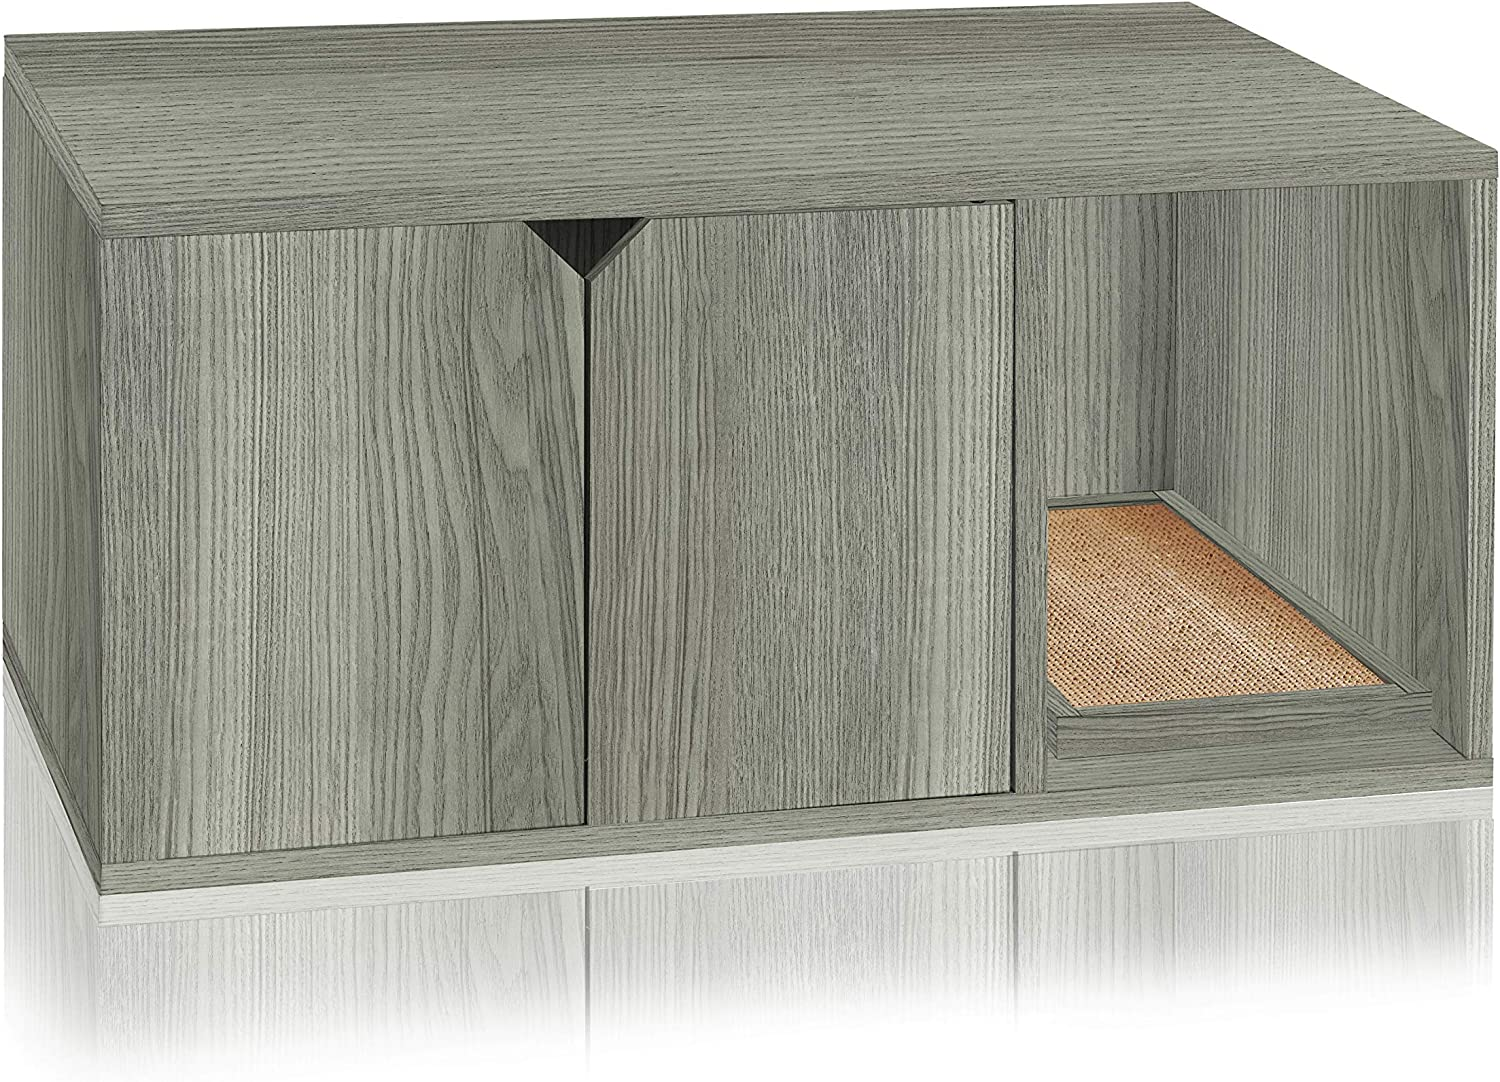 Way Basics Eco Cat Litter Box Enclosure Modern Cat Furniture (Tool-Free Assembly and Uniquely Crafted from Sustainable Non Toxic zBoard Paperboard)